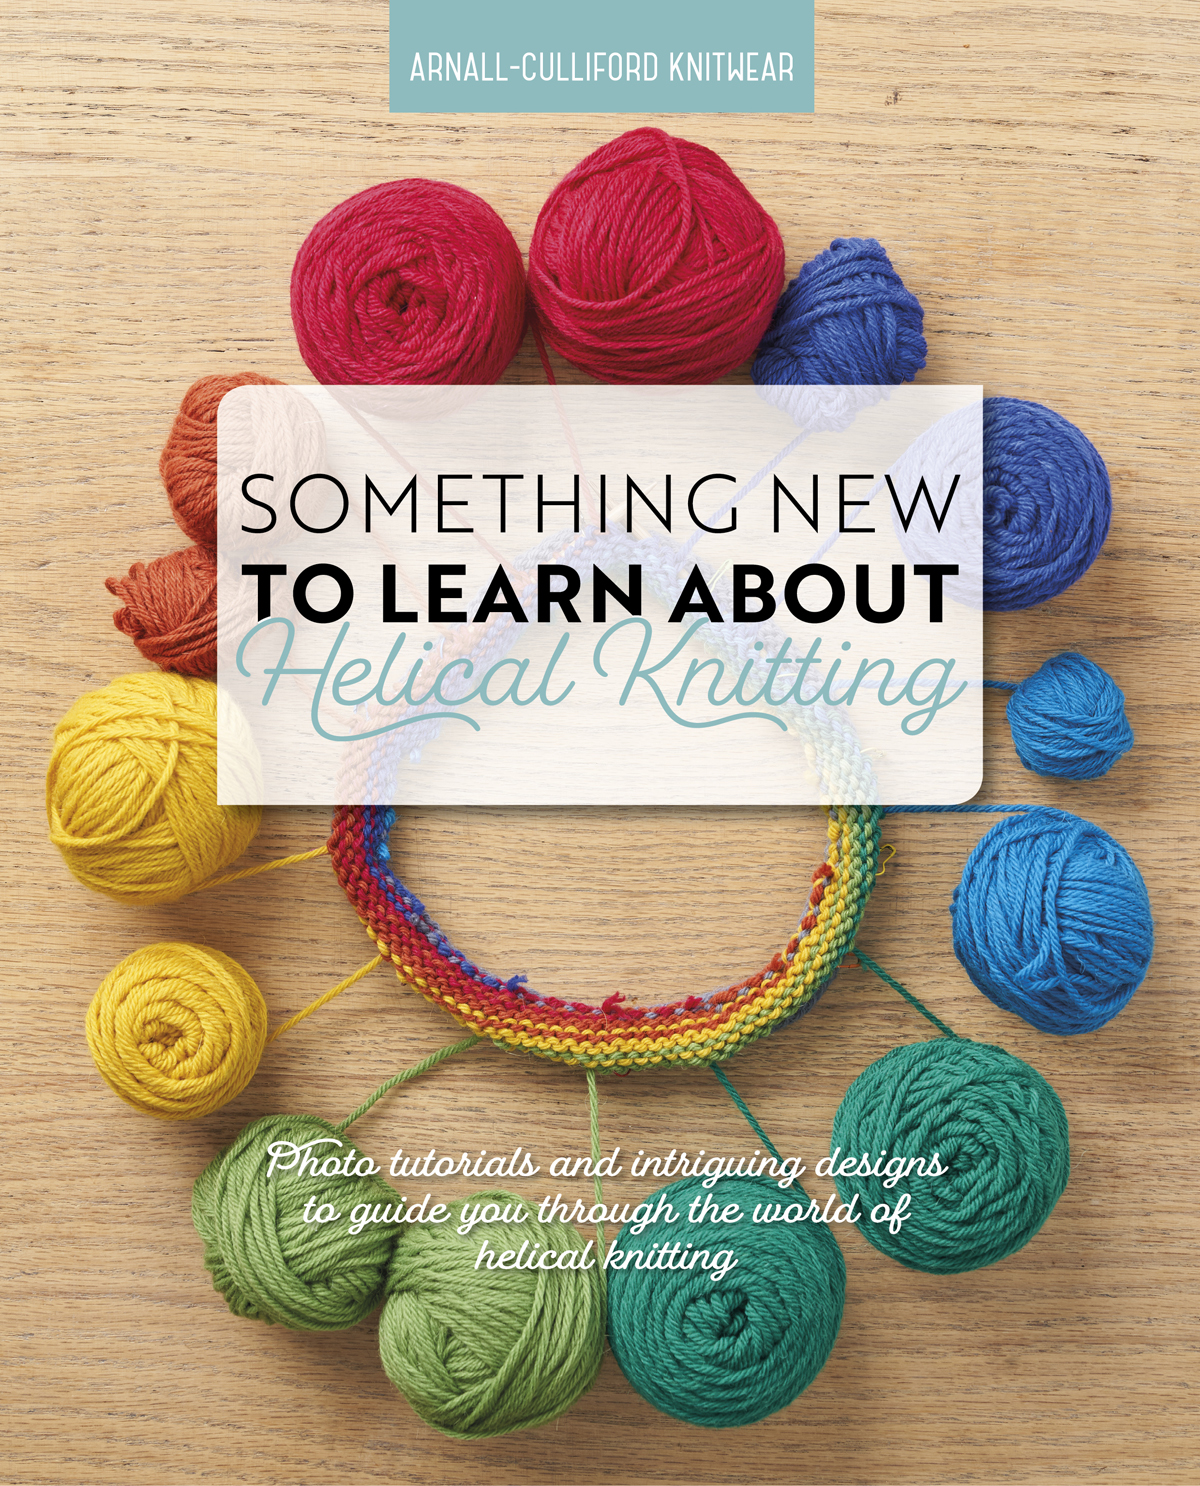 SN2LA Helical Knitting cover image_lr.jpg